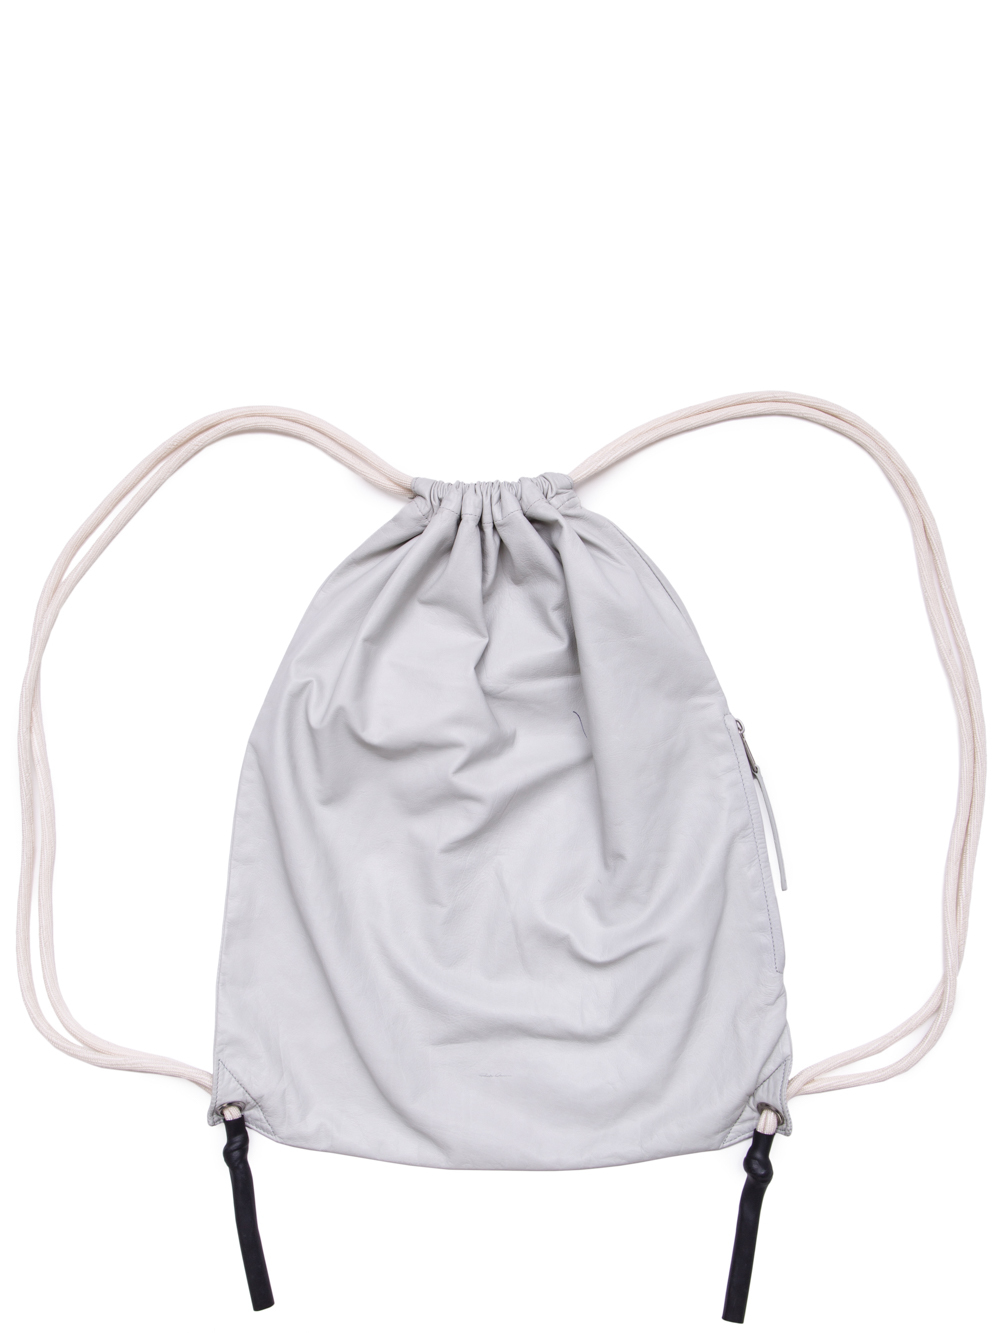 RICK OWENS SS19 BABEL DRAWSTRING BACKPACK IN OYSTER LIGHT GREY BABY CALF LEATHER